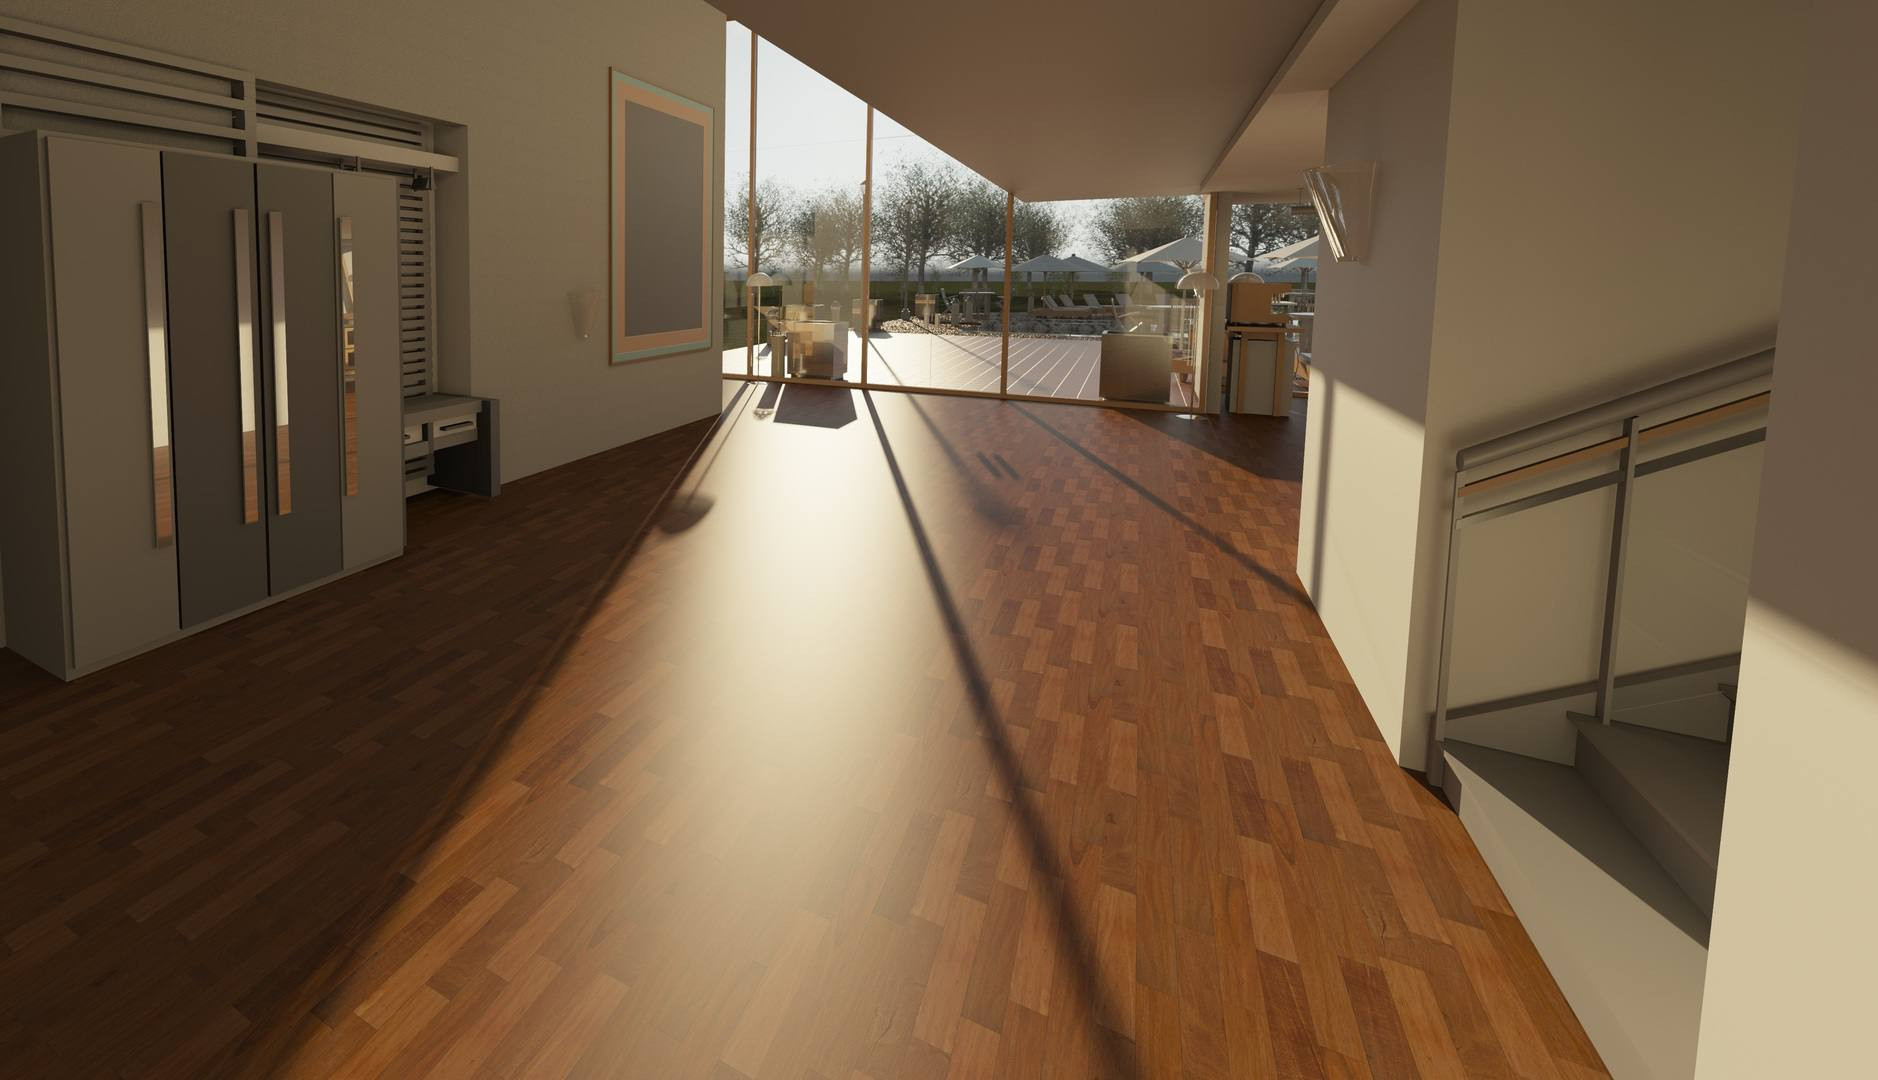 gluing solid hardwood floors to concrete of common flooring types currently used in renovation and building in architecture wood house floor interior window 917178 pxhere com 5ba27a2cc9e77c00503b27b9